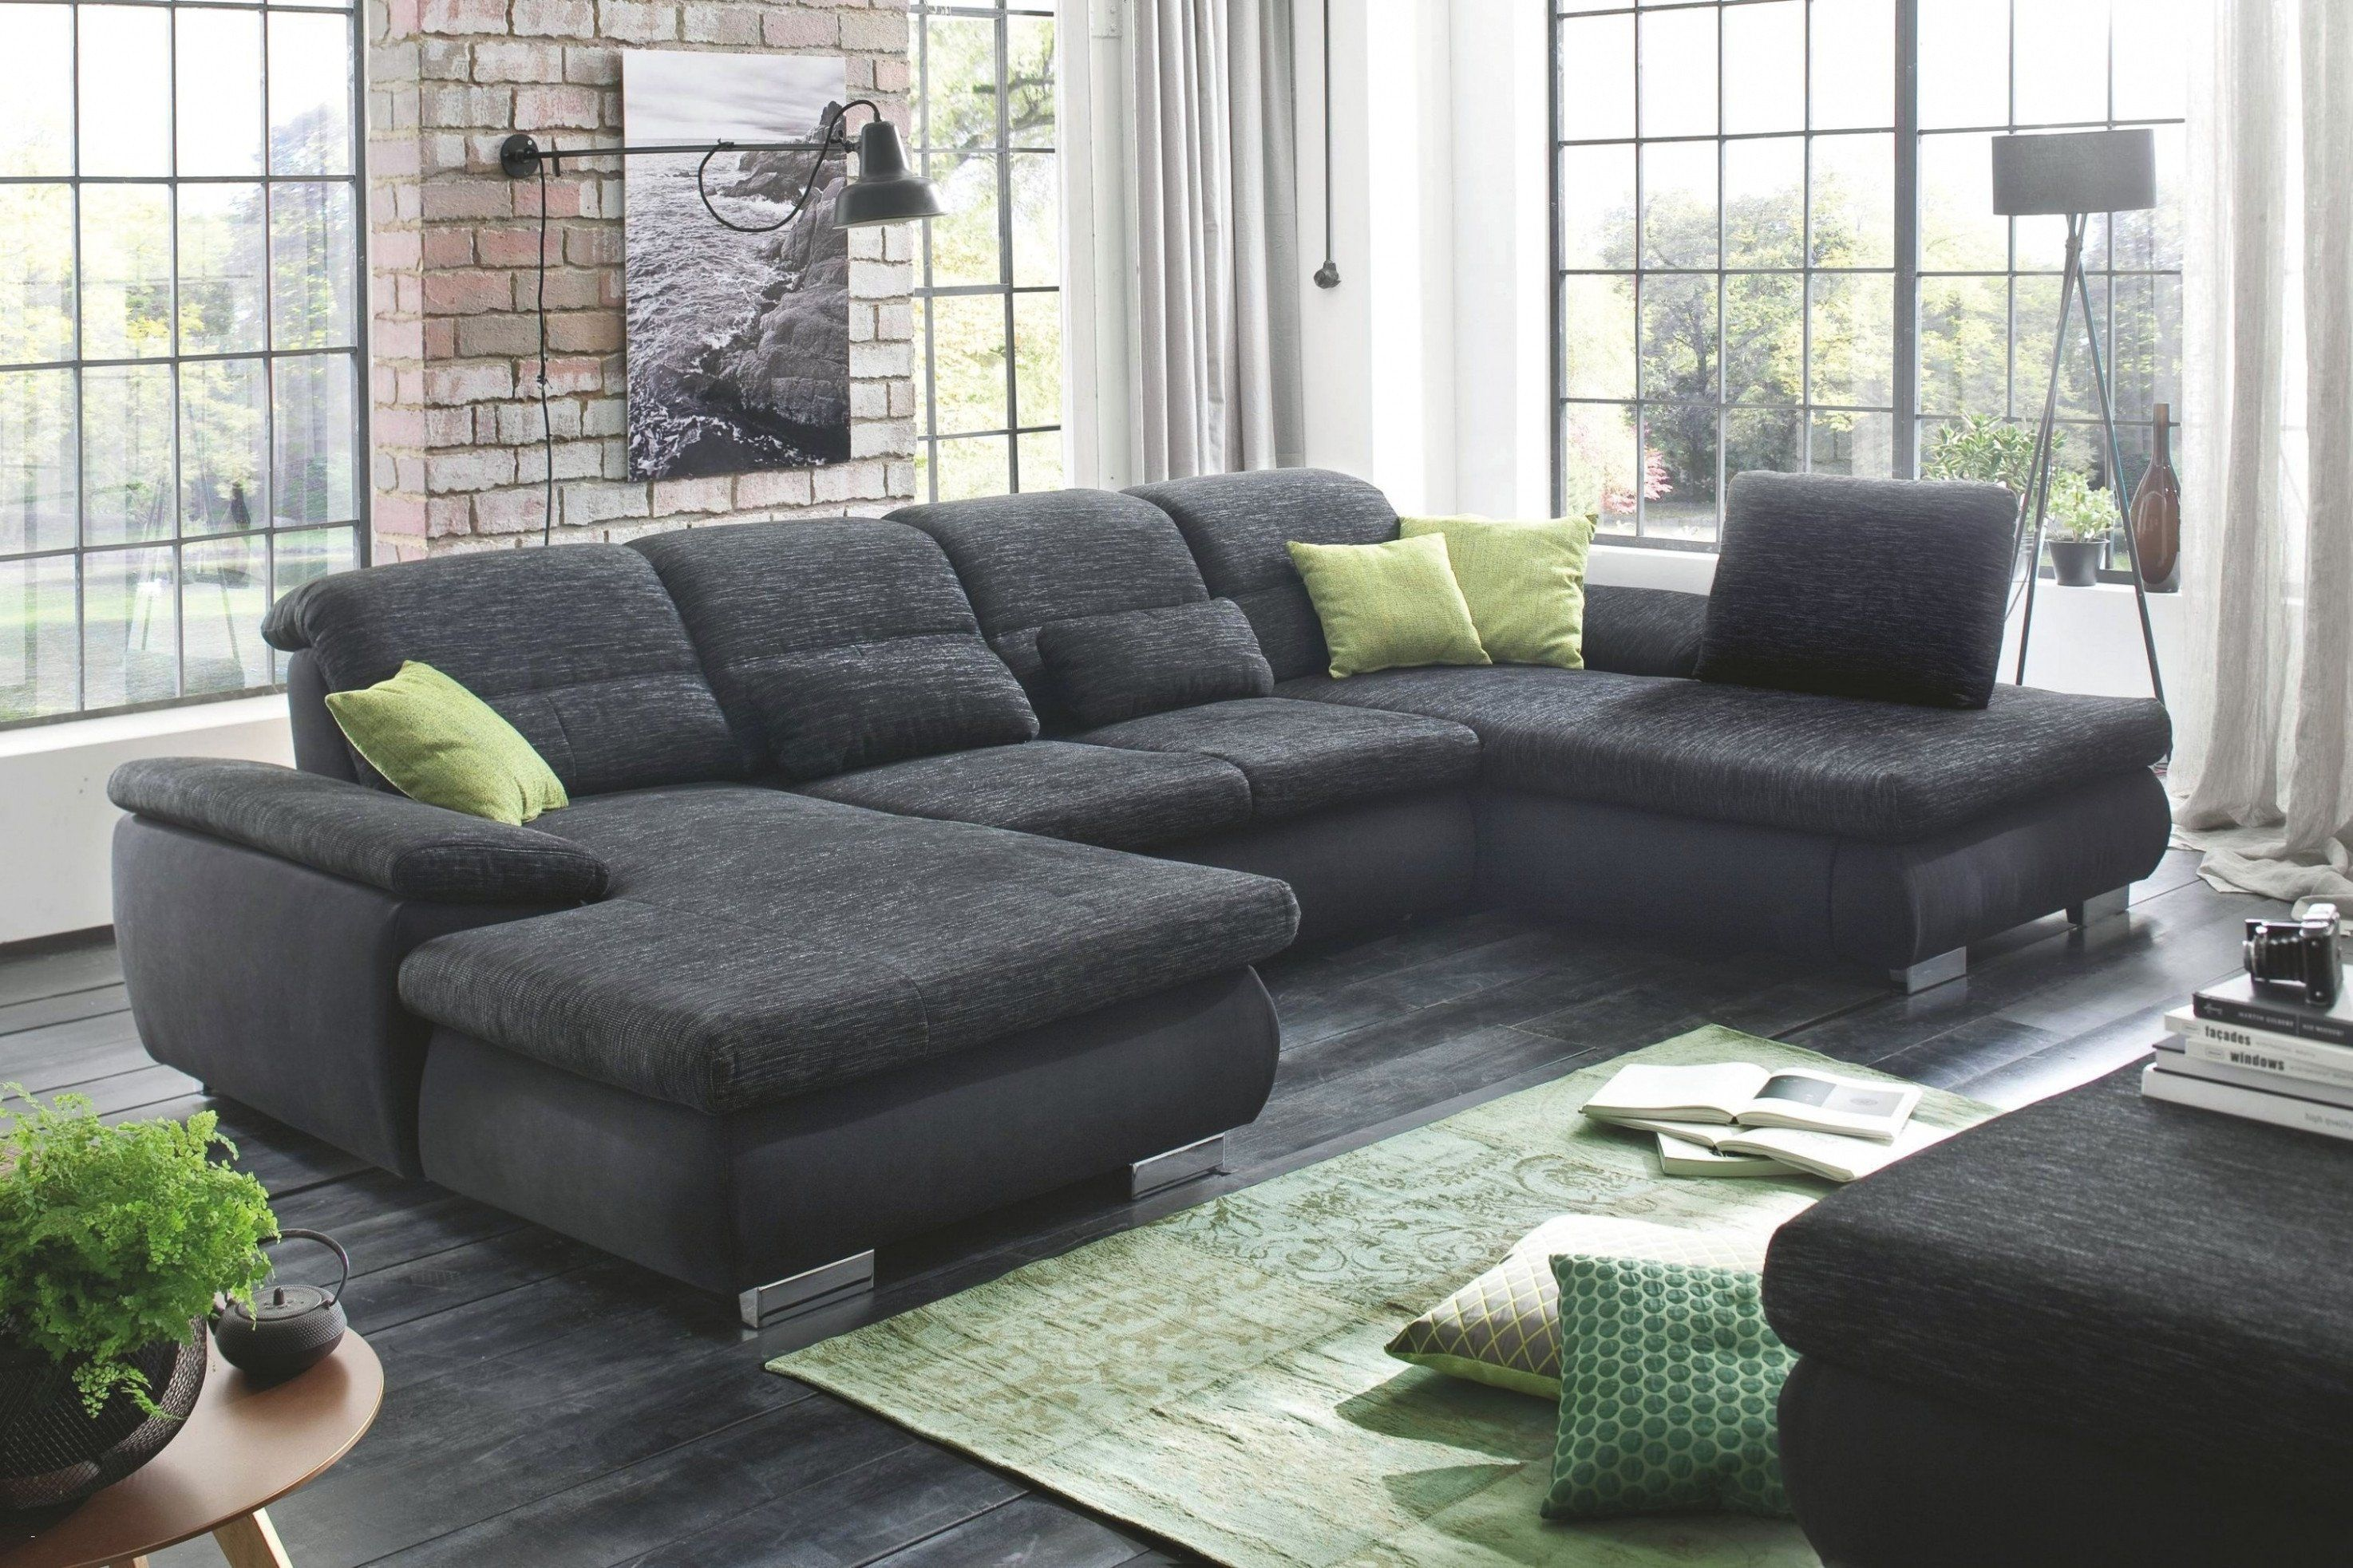 10+ Amazing Sofa And Chair Living Room Set